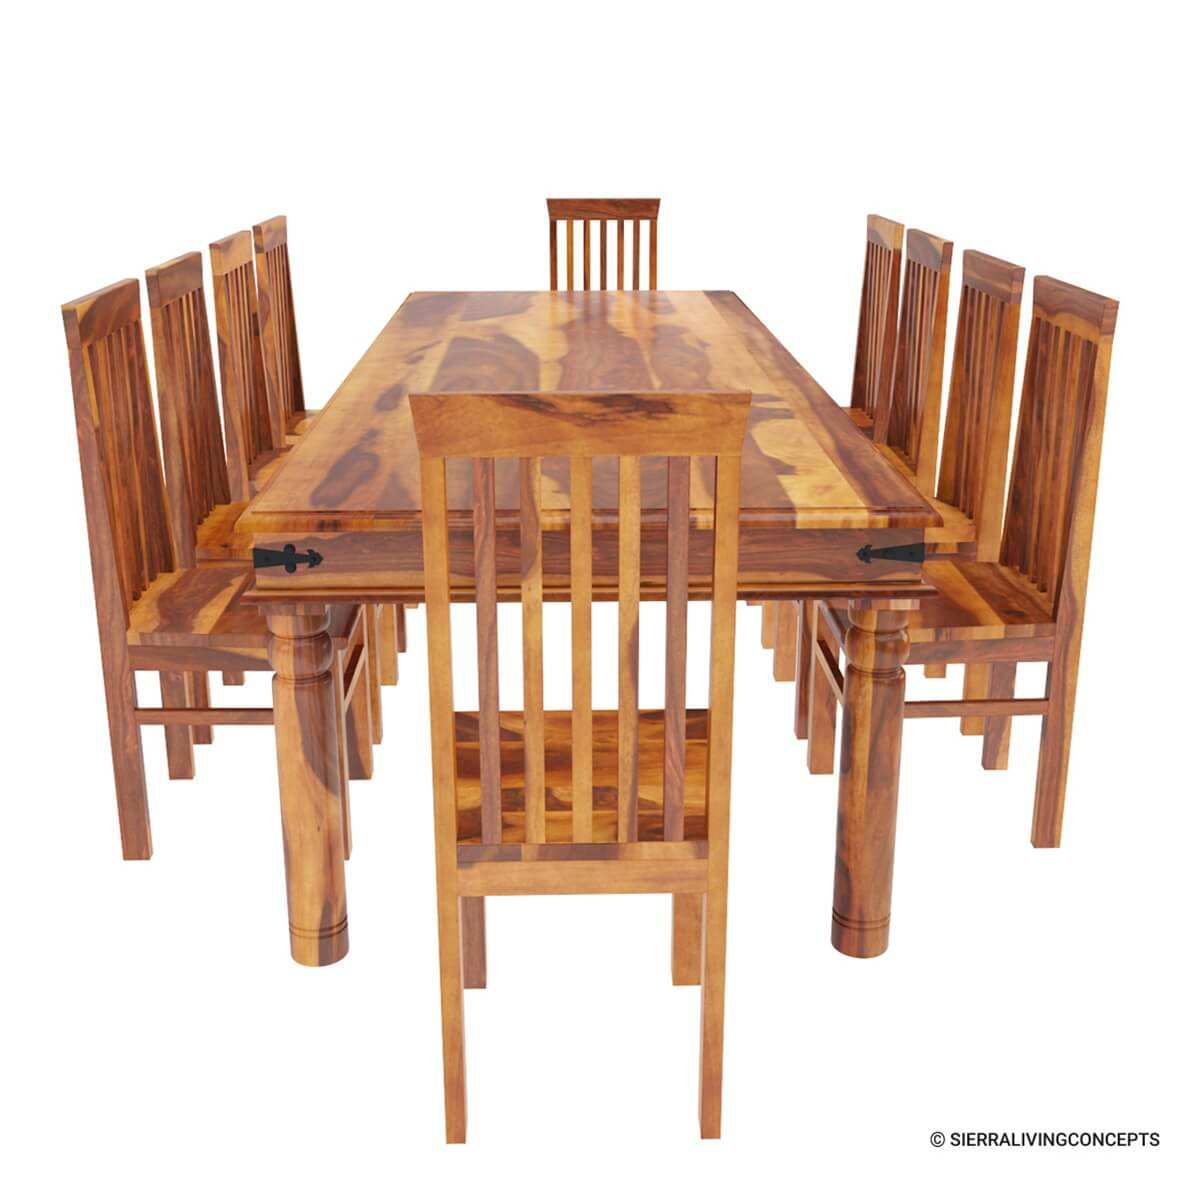 Huge Dining Room Tables: Rustic Lincoln Study Large Dining Room Table Chair Set For